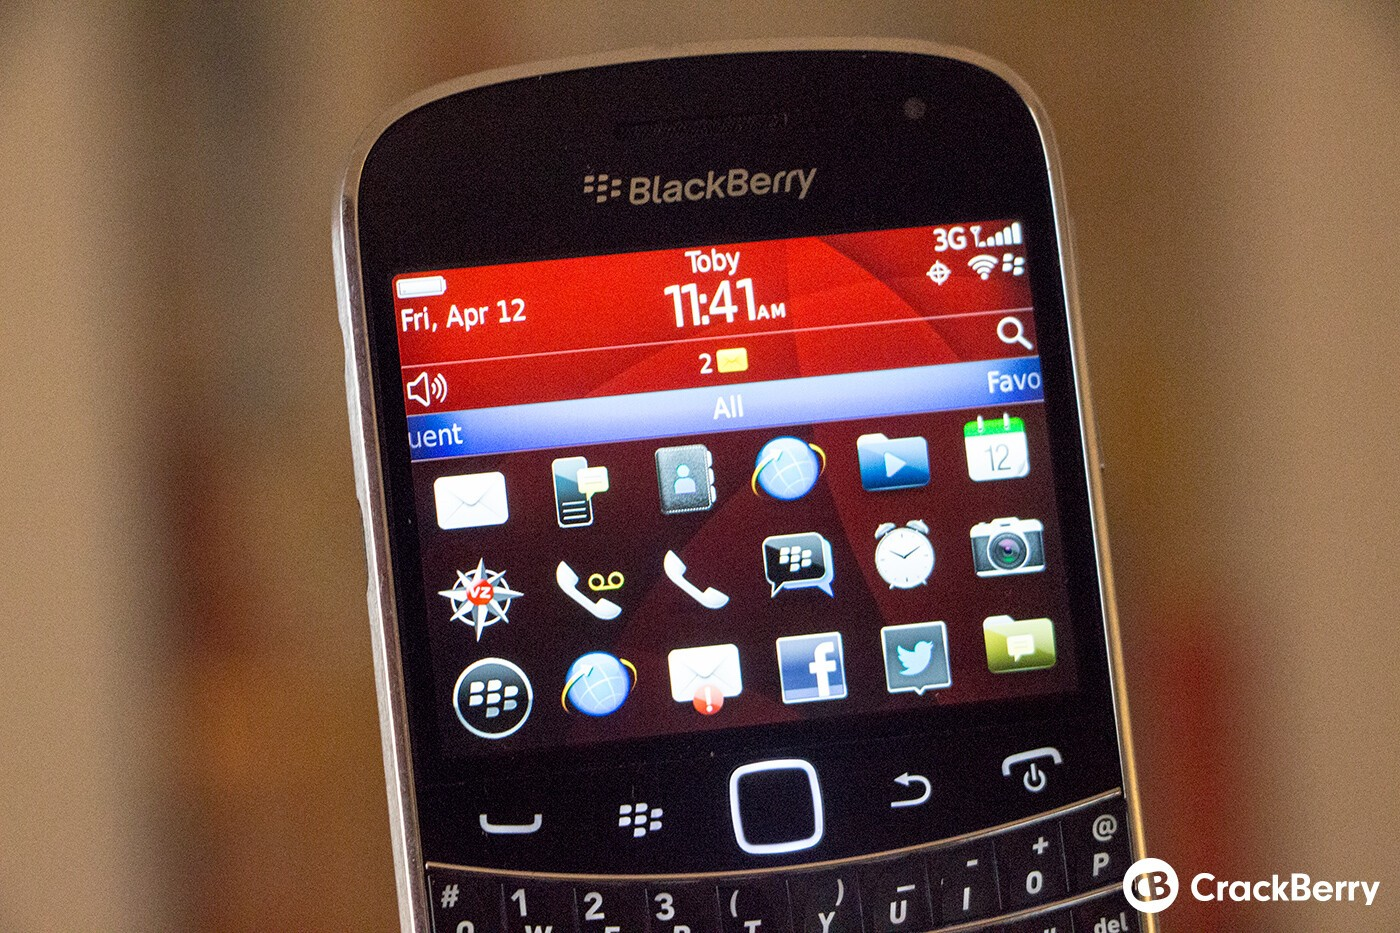 BlackBerry 7